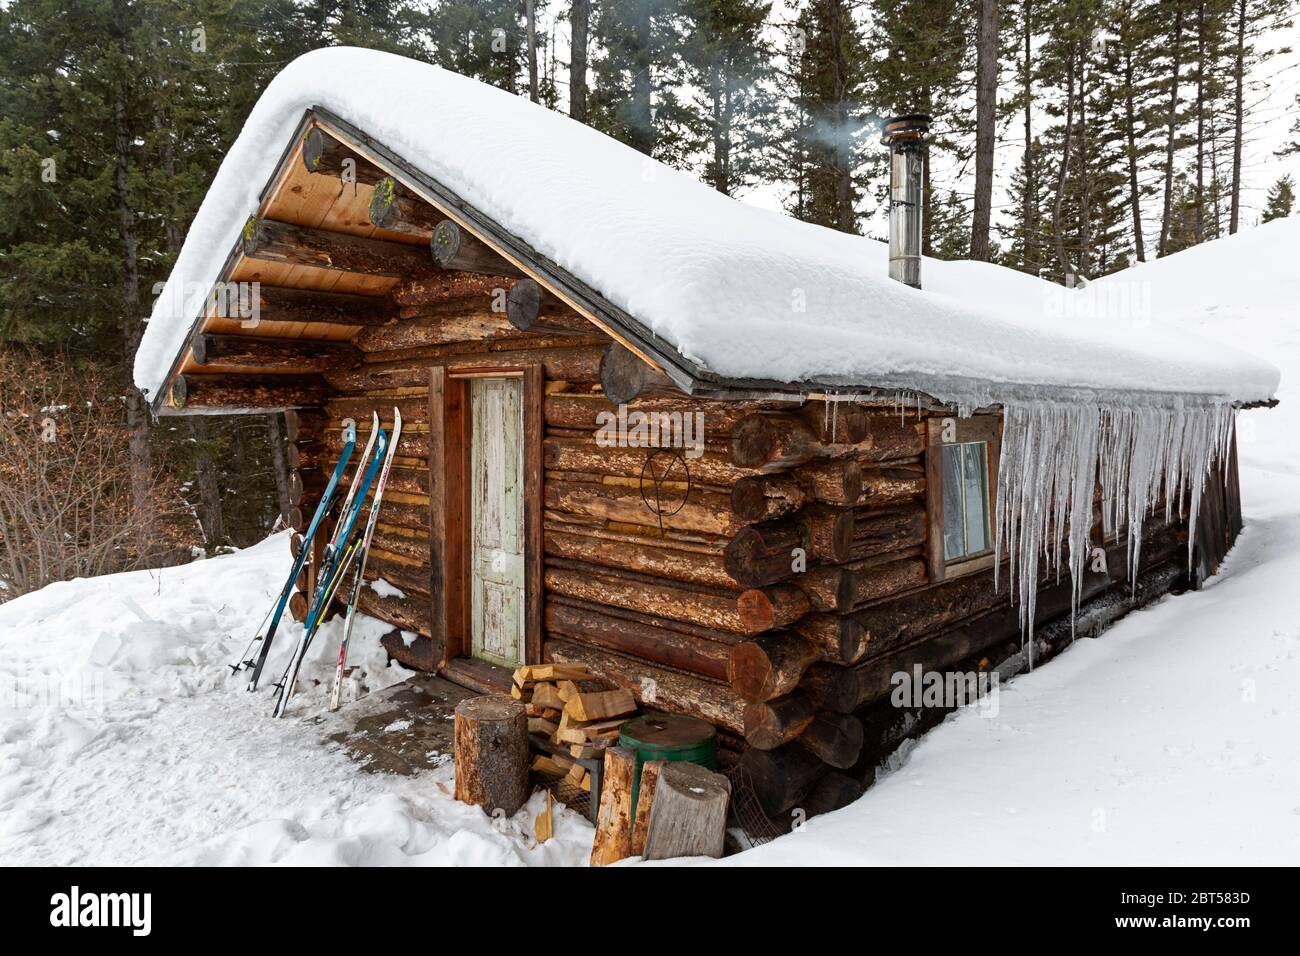 Mt00519 00 Montana Rental Mcdonald Log Cabin At The Ghost Town Of Garnet Accessed In The Winter By Ski Or Snowmobile Stock Photo Alamy